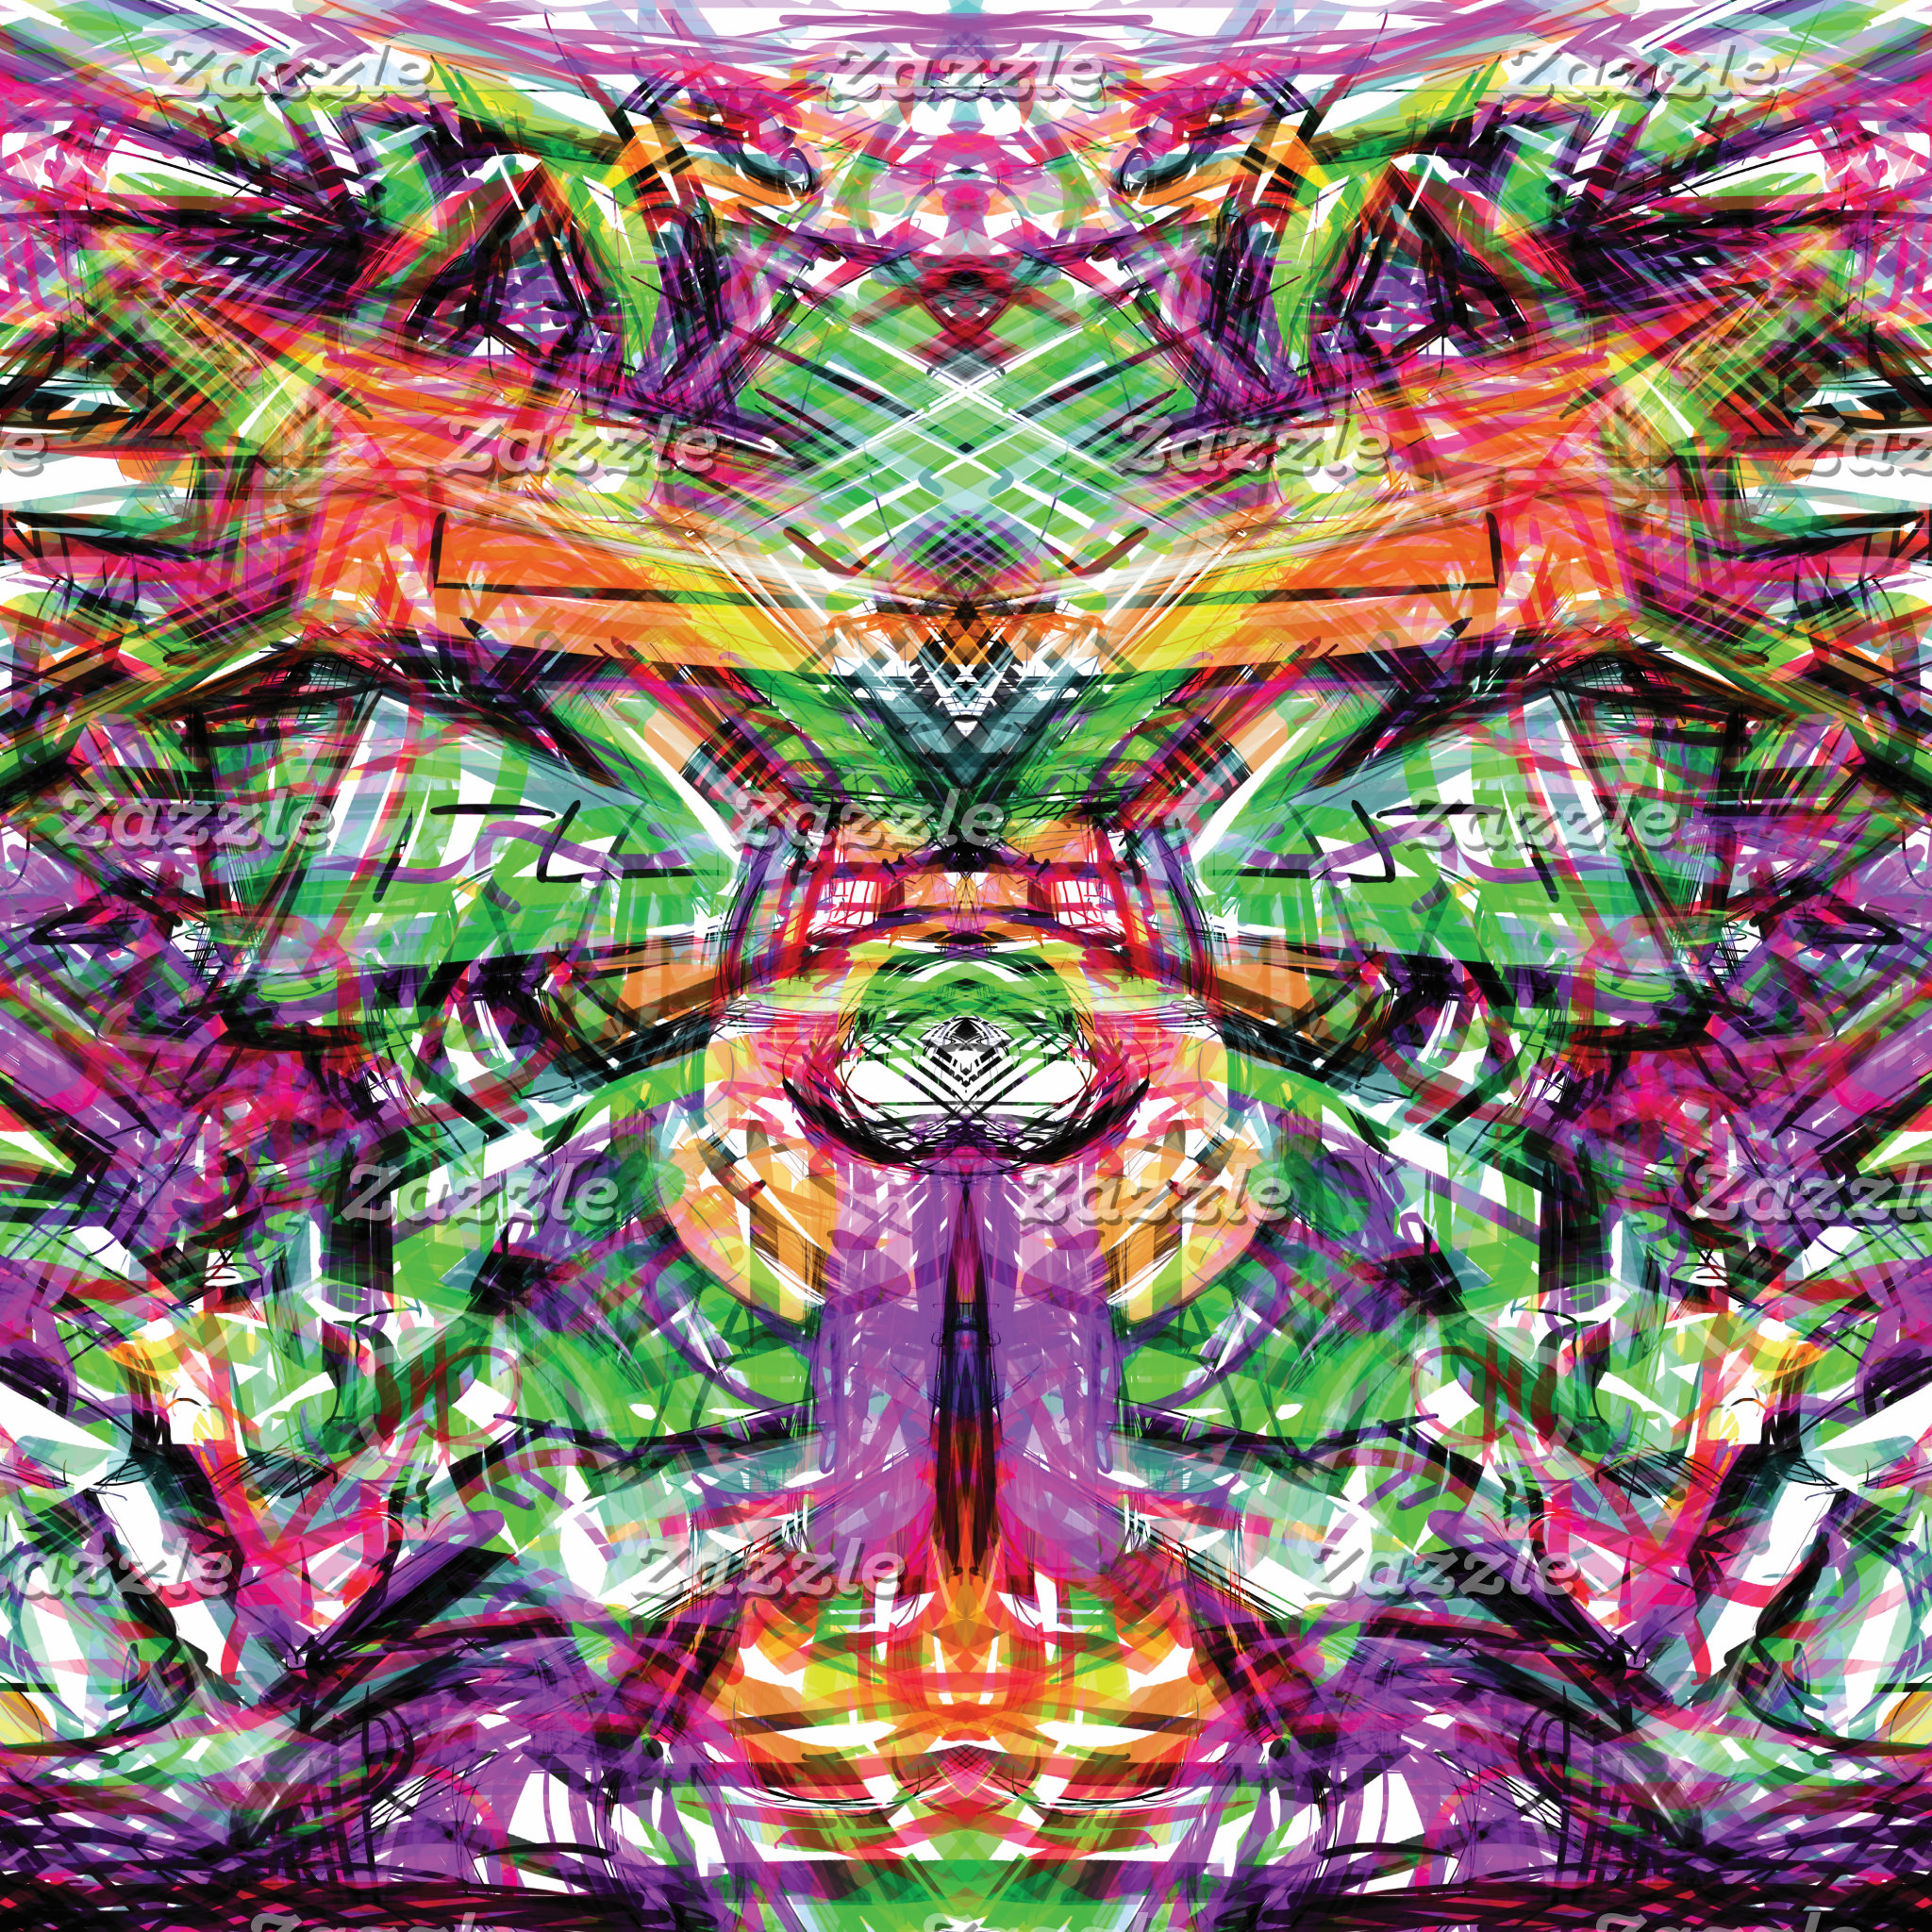 Neon Tribal Graffiti Abstract ArtWork